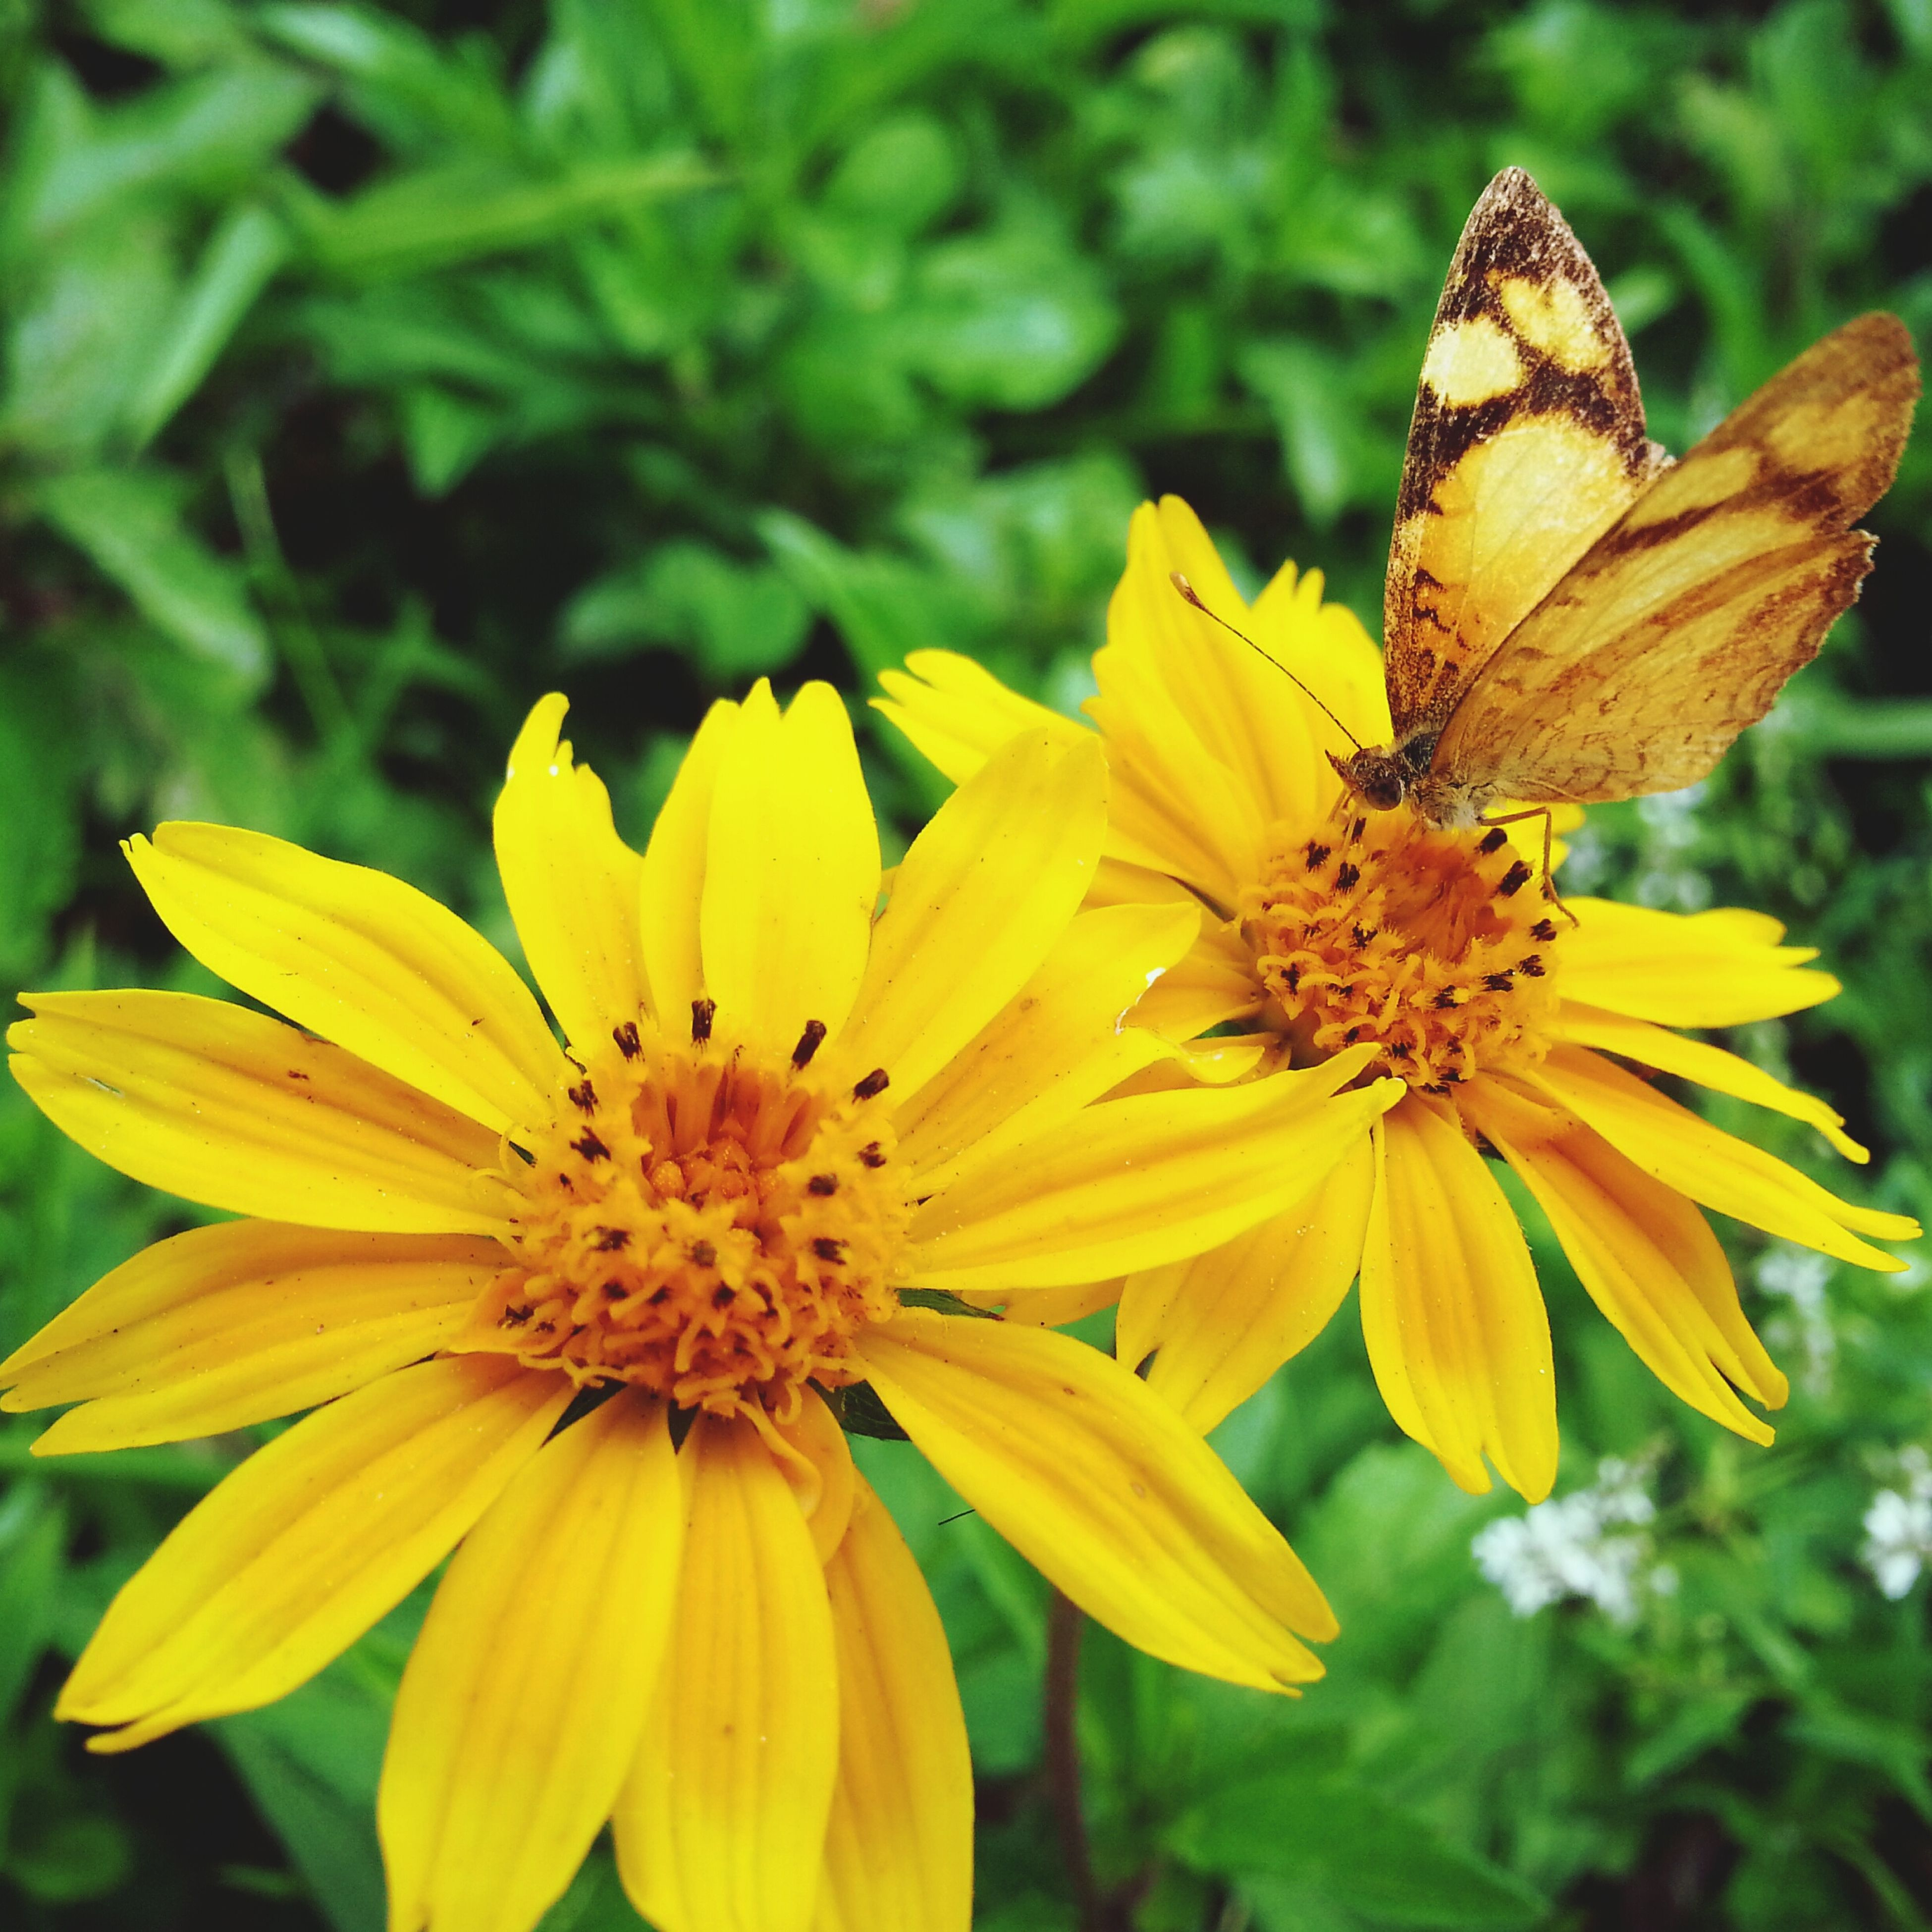 flower, petal, yellow, freshness, insect, flower head, fragility, one animal, focus on foreground, animal themes, animals in the wild, close-up, beauty in nature, growth, pollen, wildlife, nature, plant, blooming, pollination